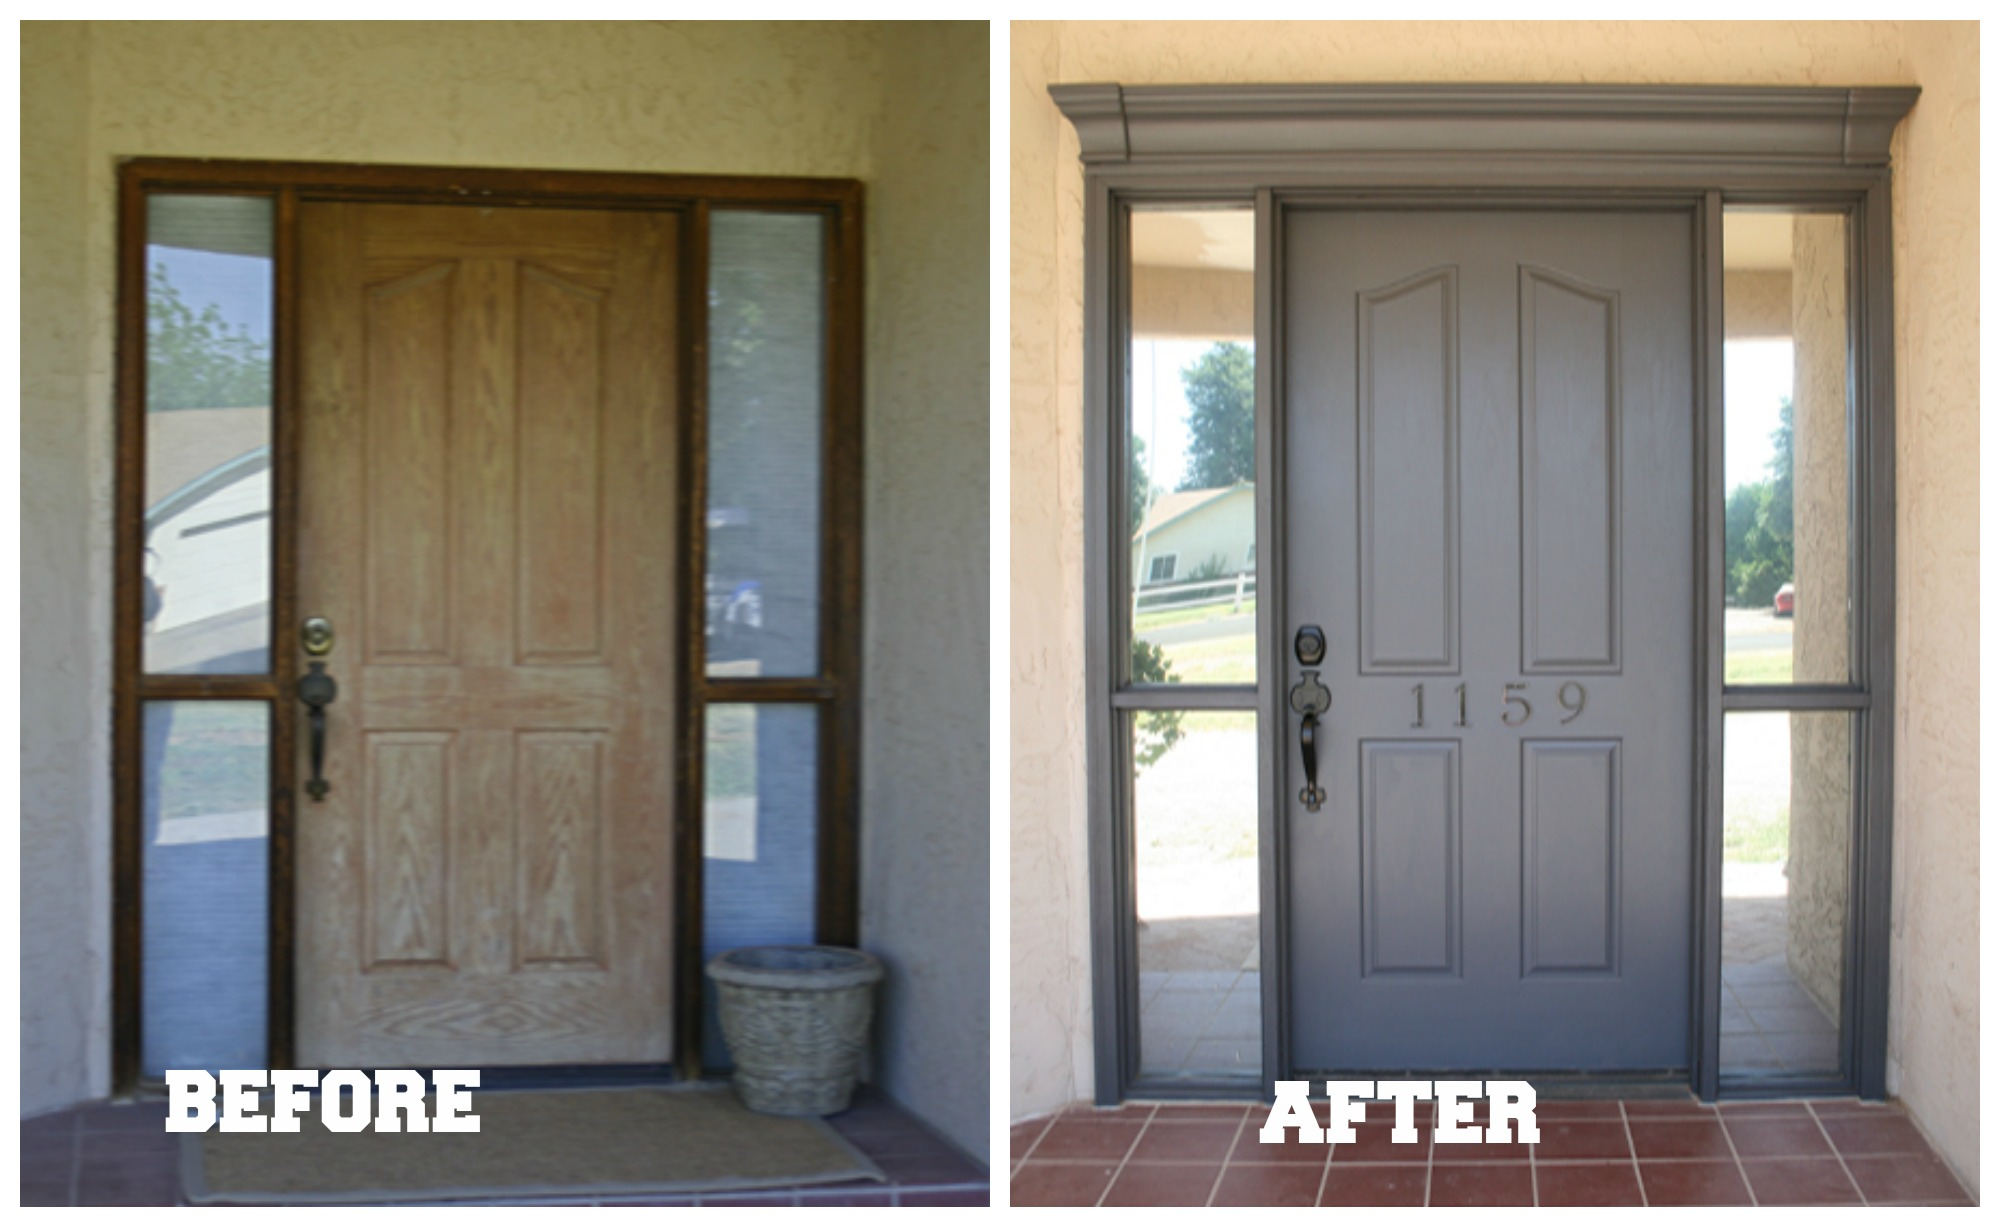 Me And Jilly Front Door Before After How To Decorate A